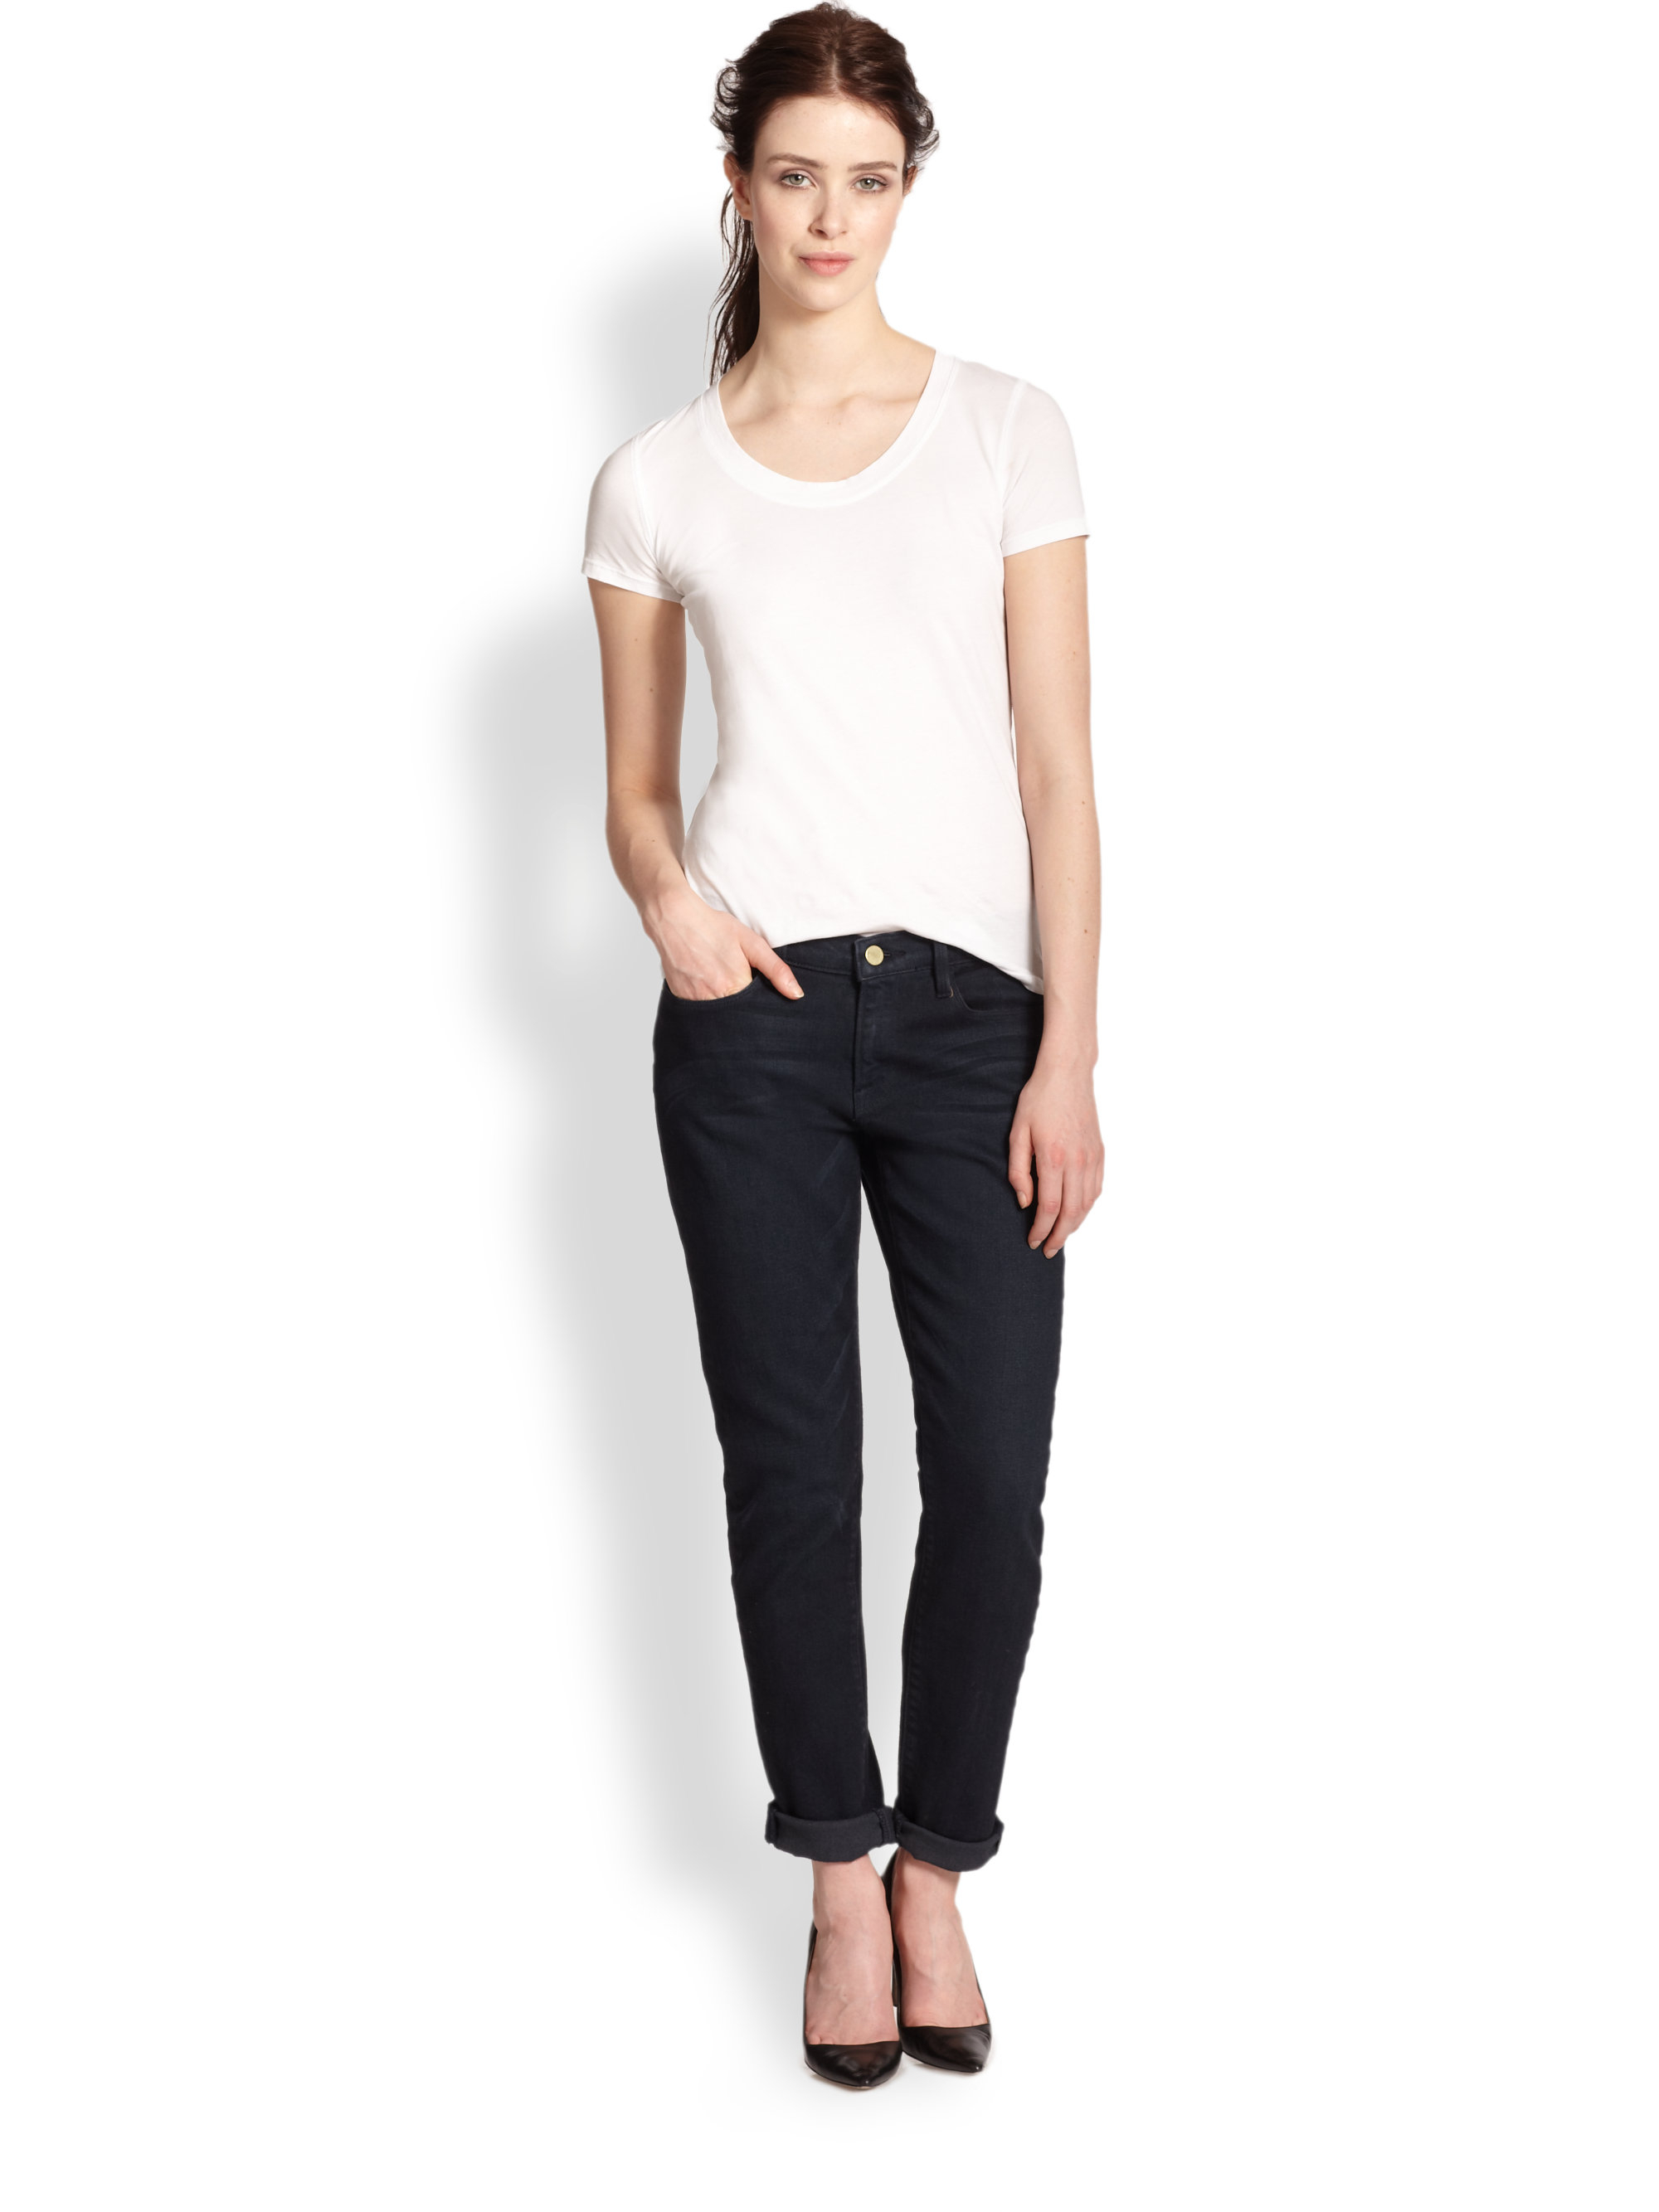 Redoubtable Frame Le Garcon Jeans | Simple Frame Denim Le Garcon